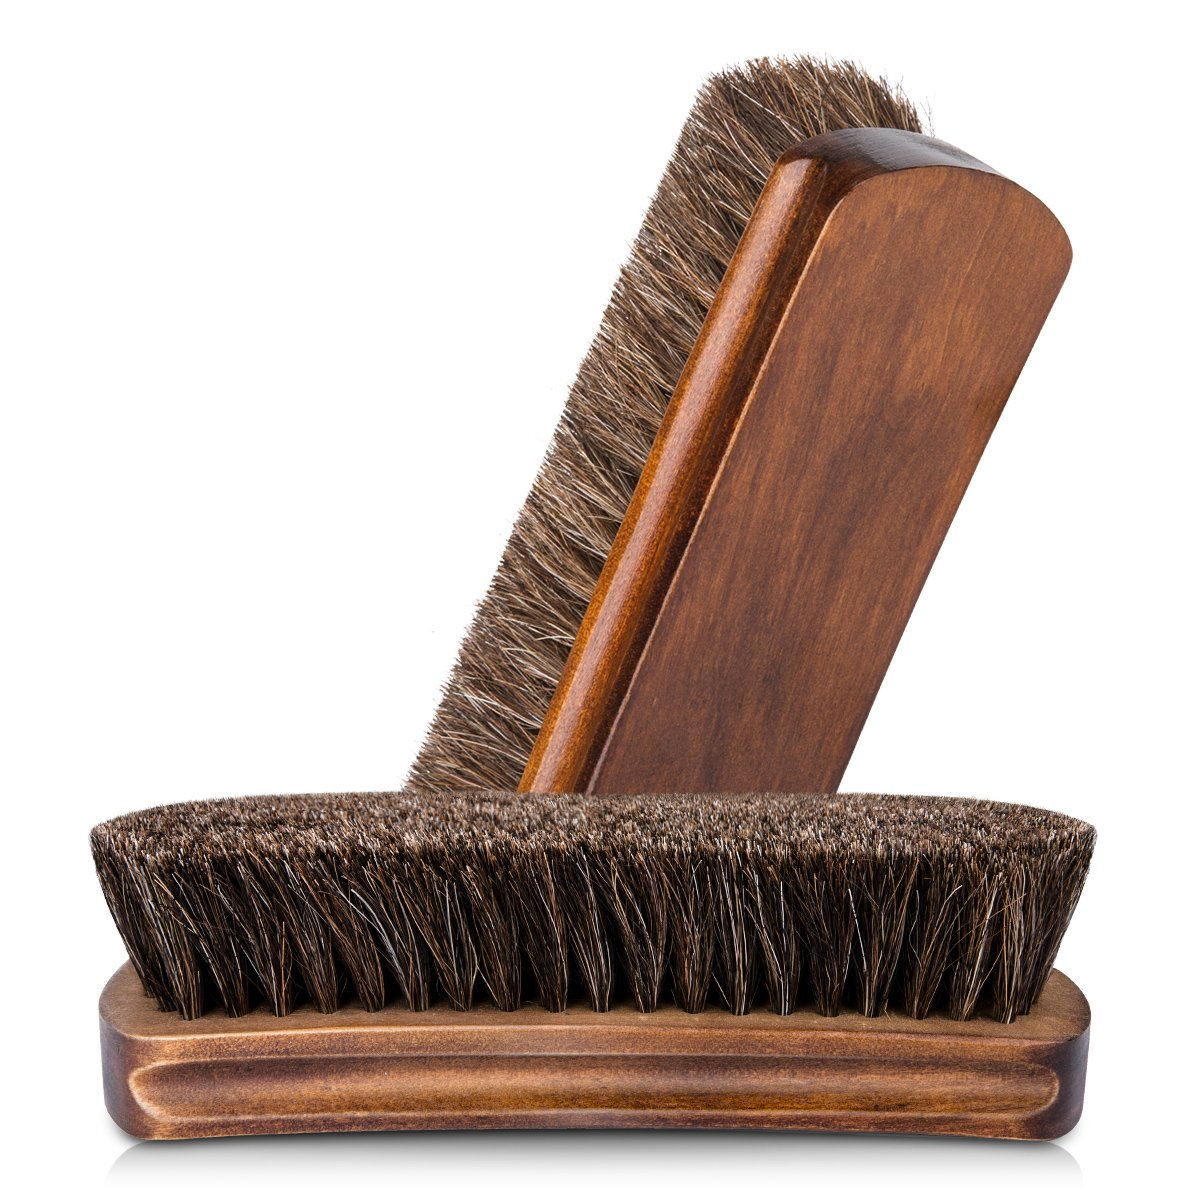 6.7'' Horsehair Shoe Shine Brushes with Horse Hair Bristles for Boots, Shoes & Other Leather Care, 2 Pack